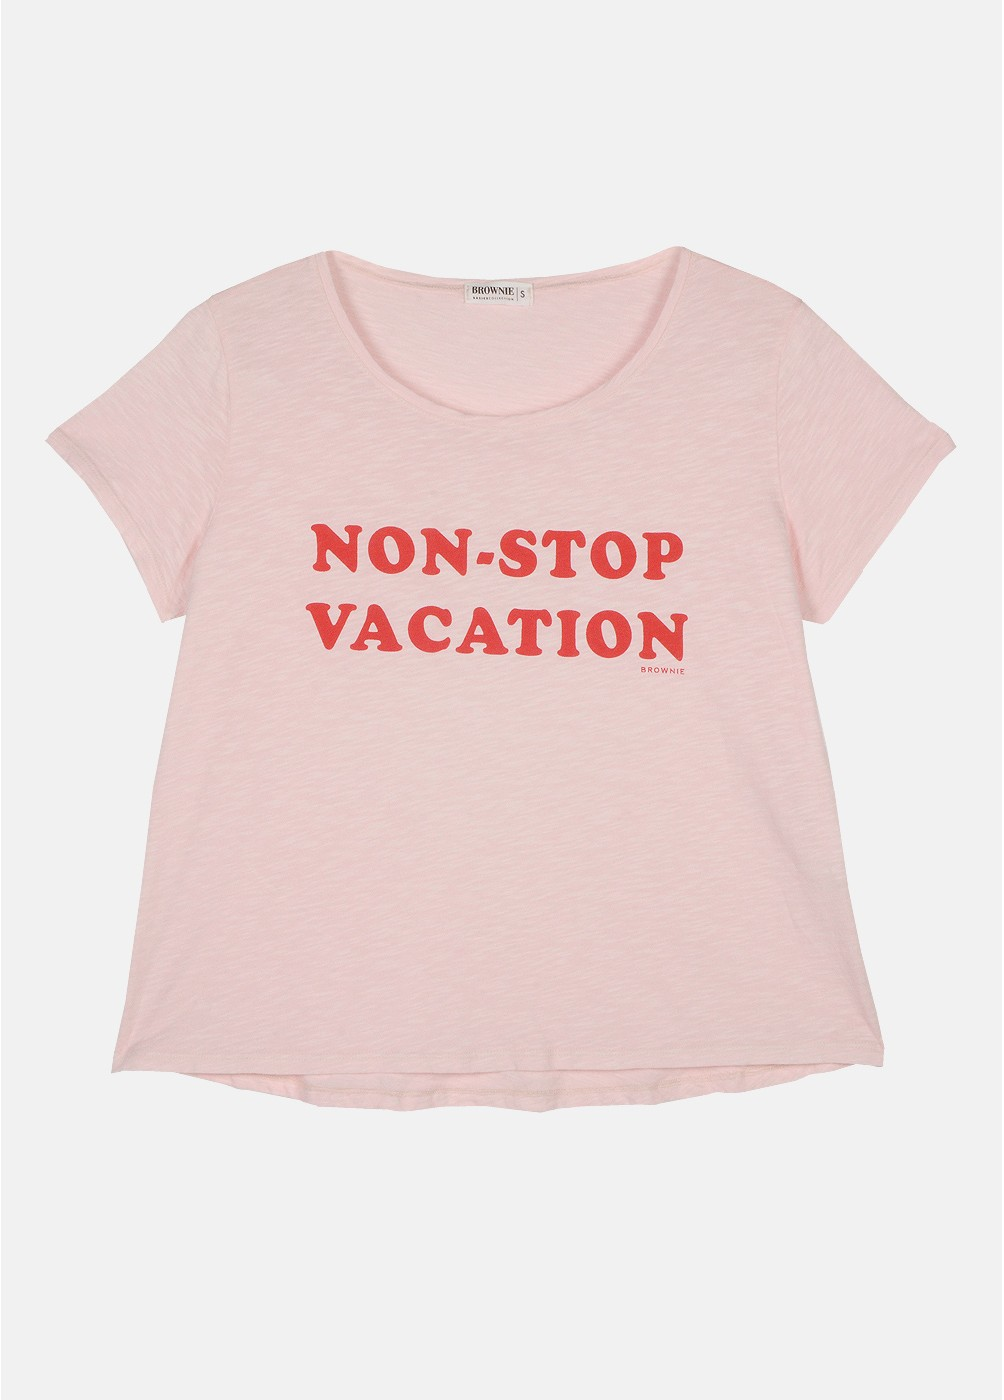 CAMISETA M CORTA VACATION VACATION